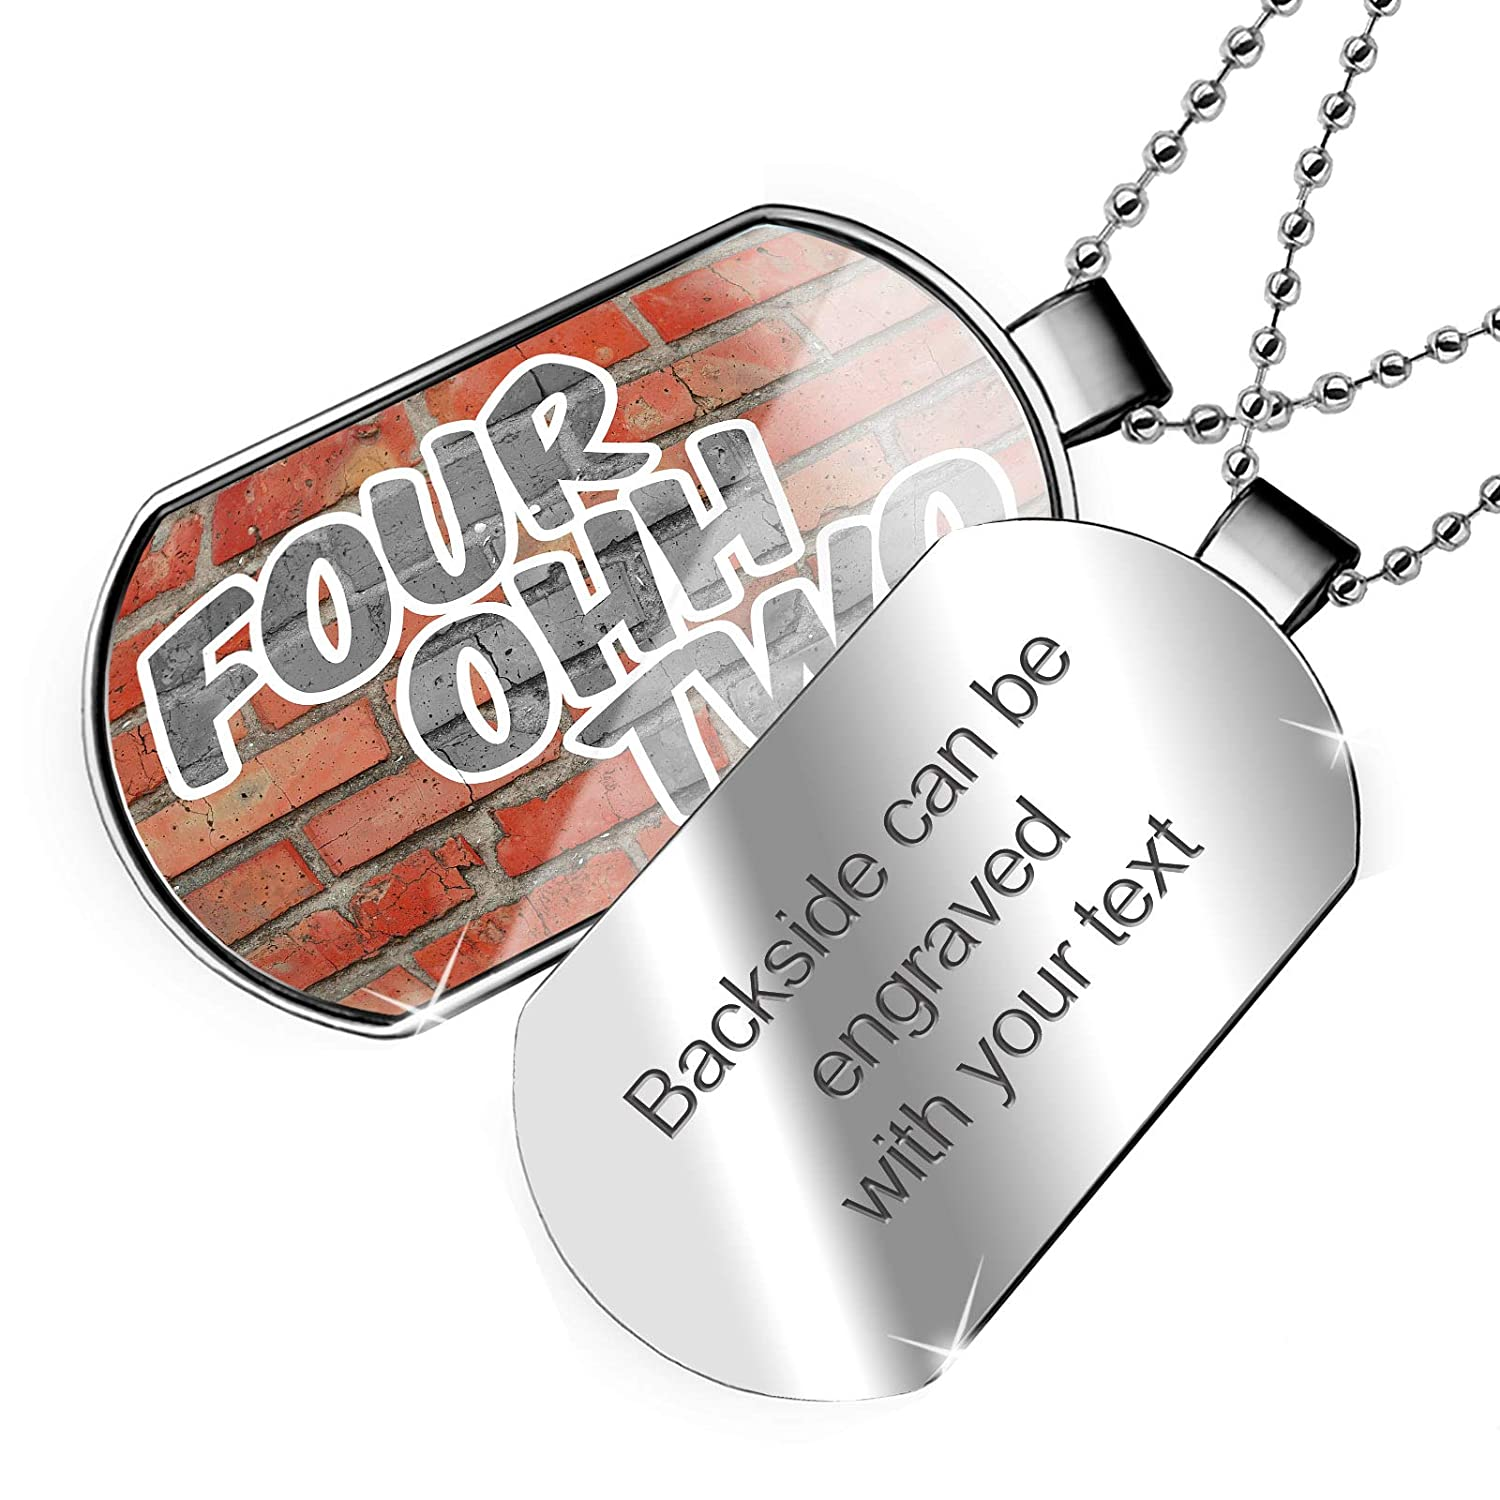 NE Brick Dogtag Necklace NEONBLOND Personalized Name Engraved 402 Omaha